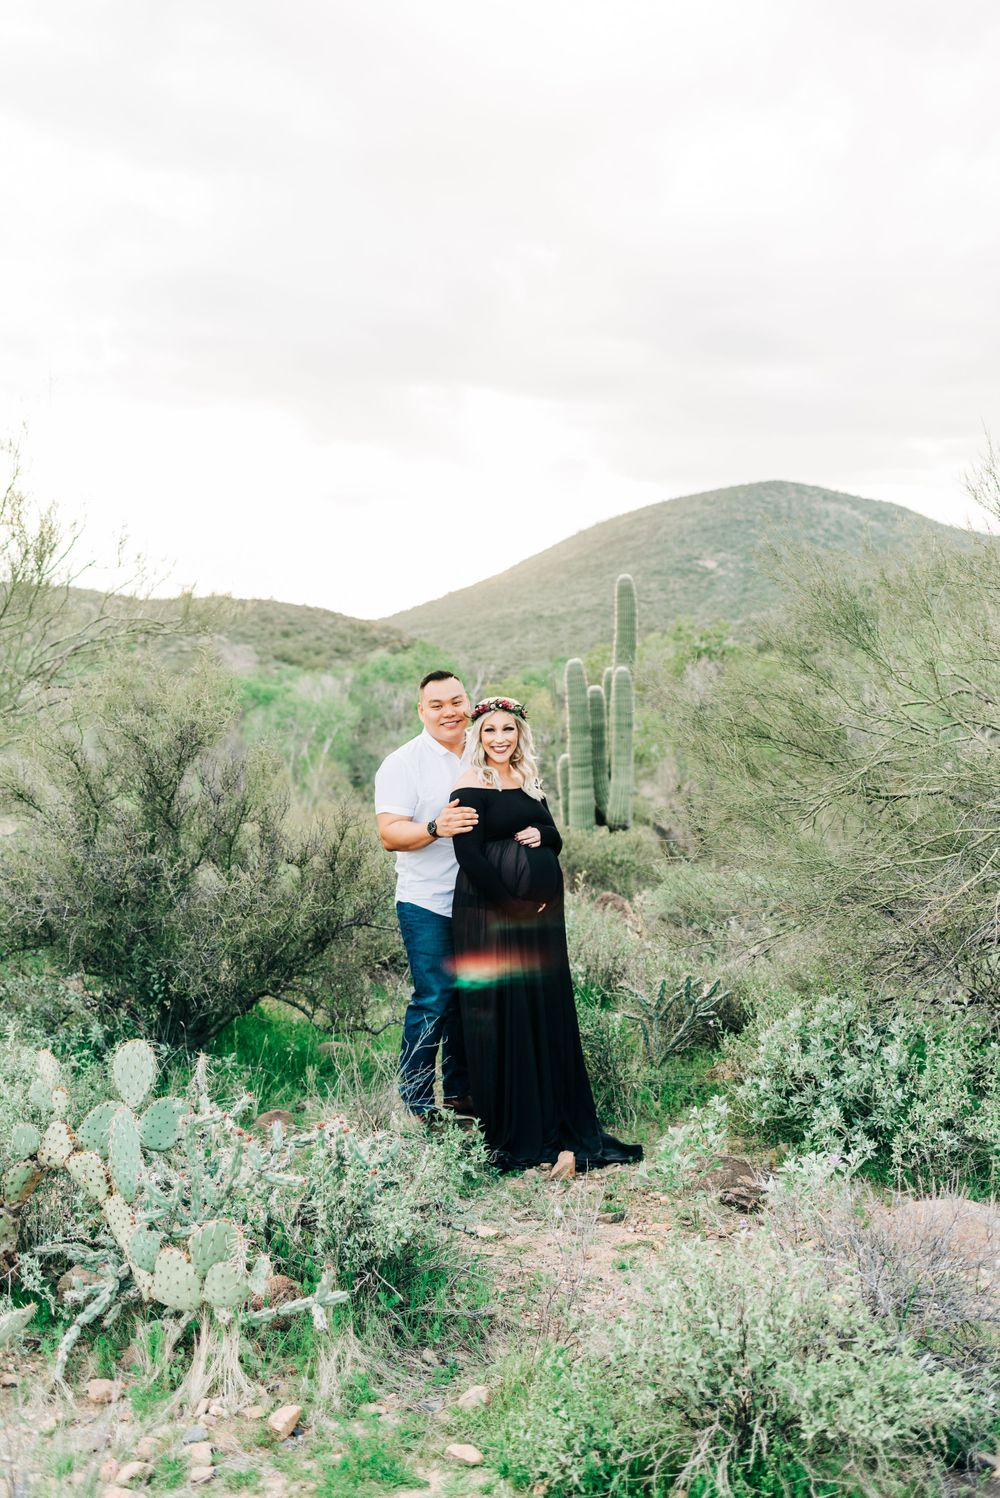 Phoenix, AZ maternity session with mom wearing floral crown